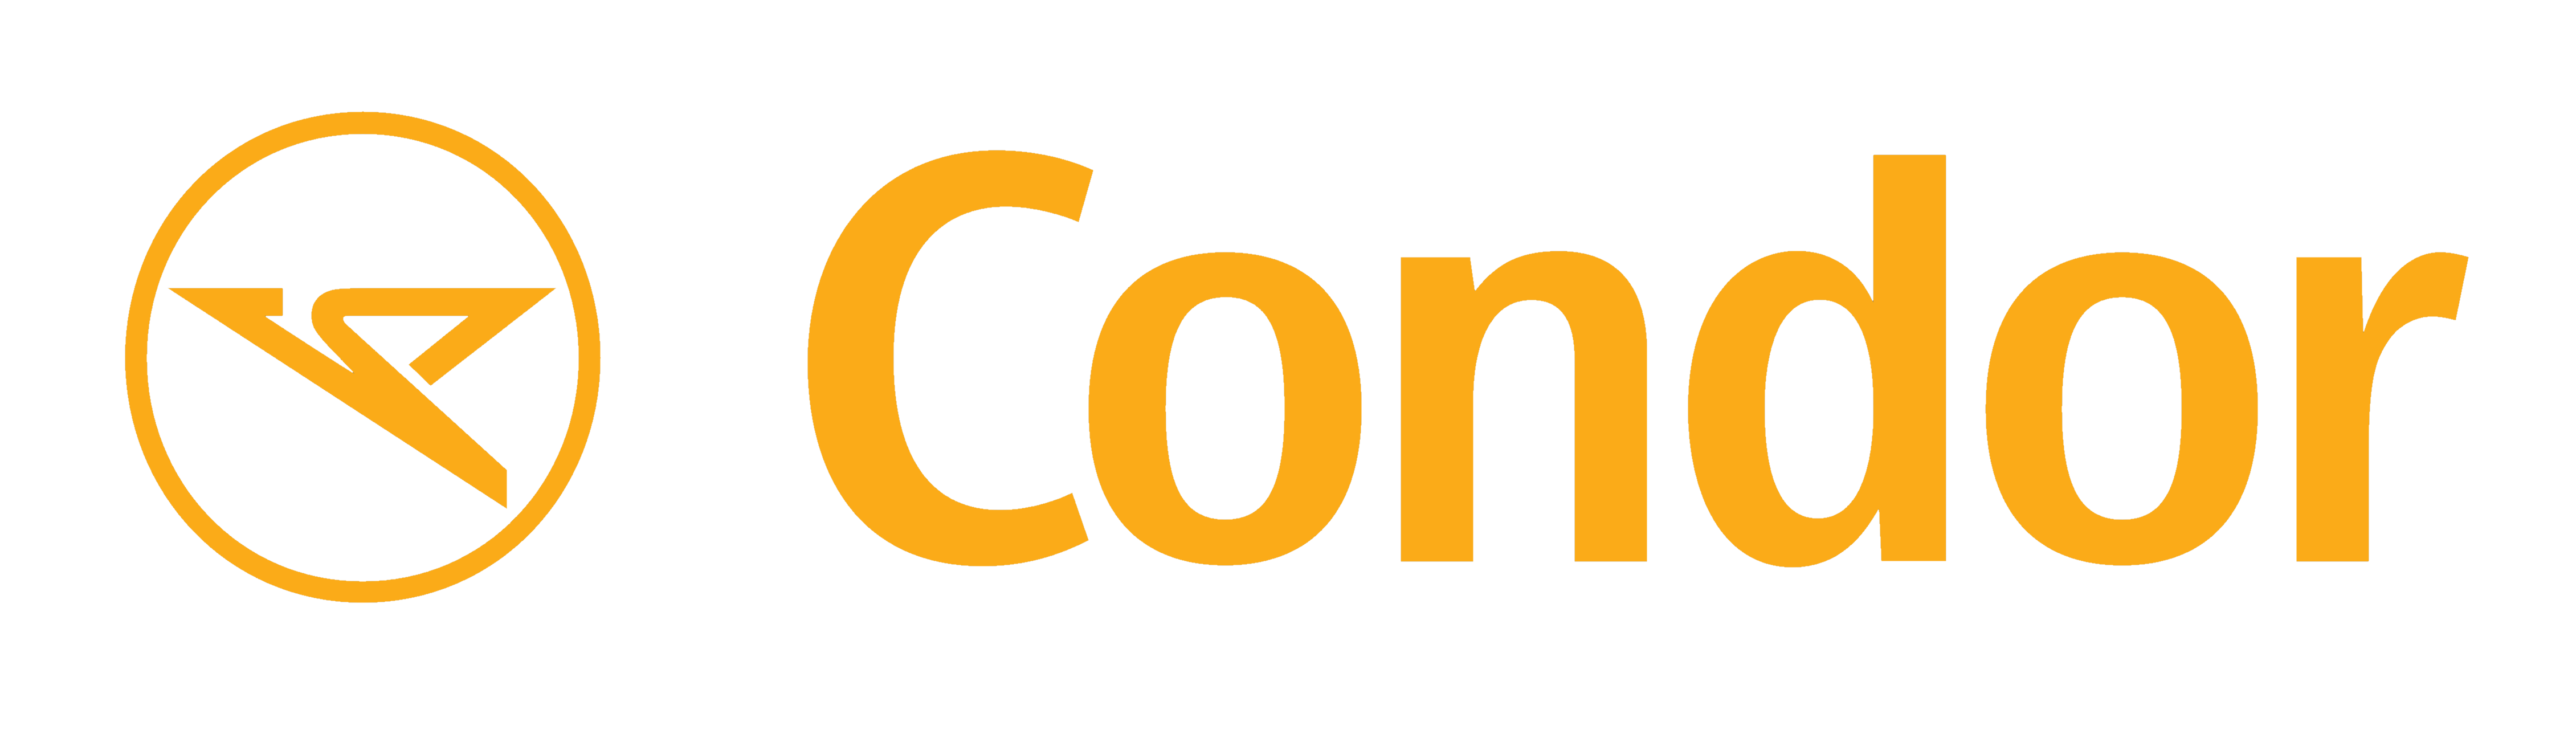 AW-Condor Airlines_Isotype